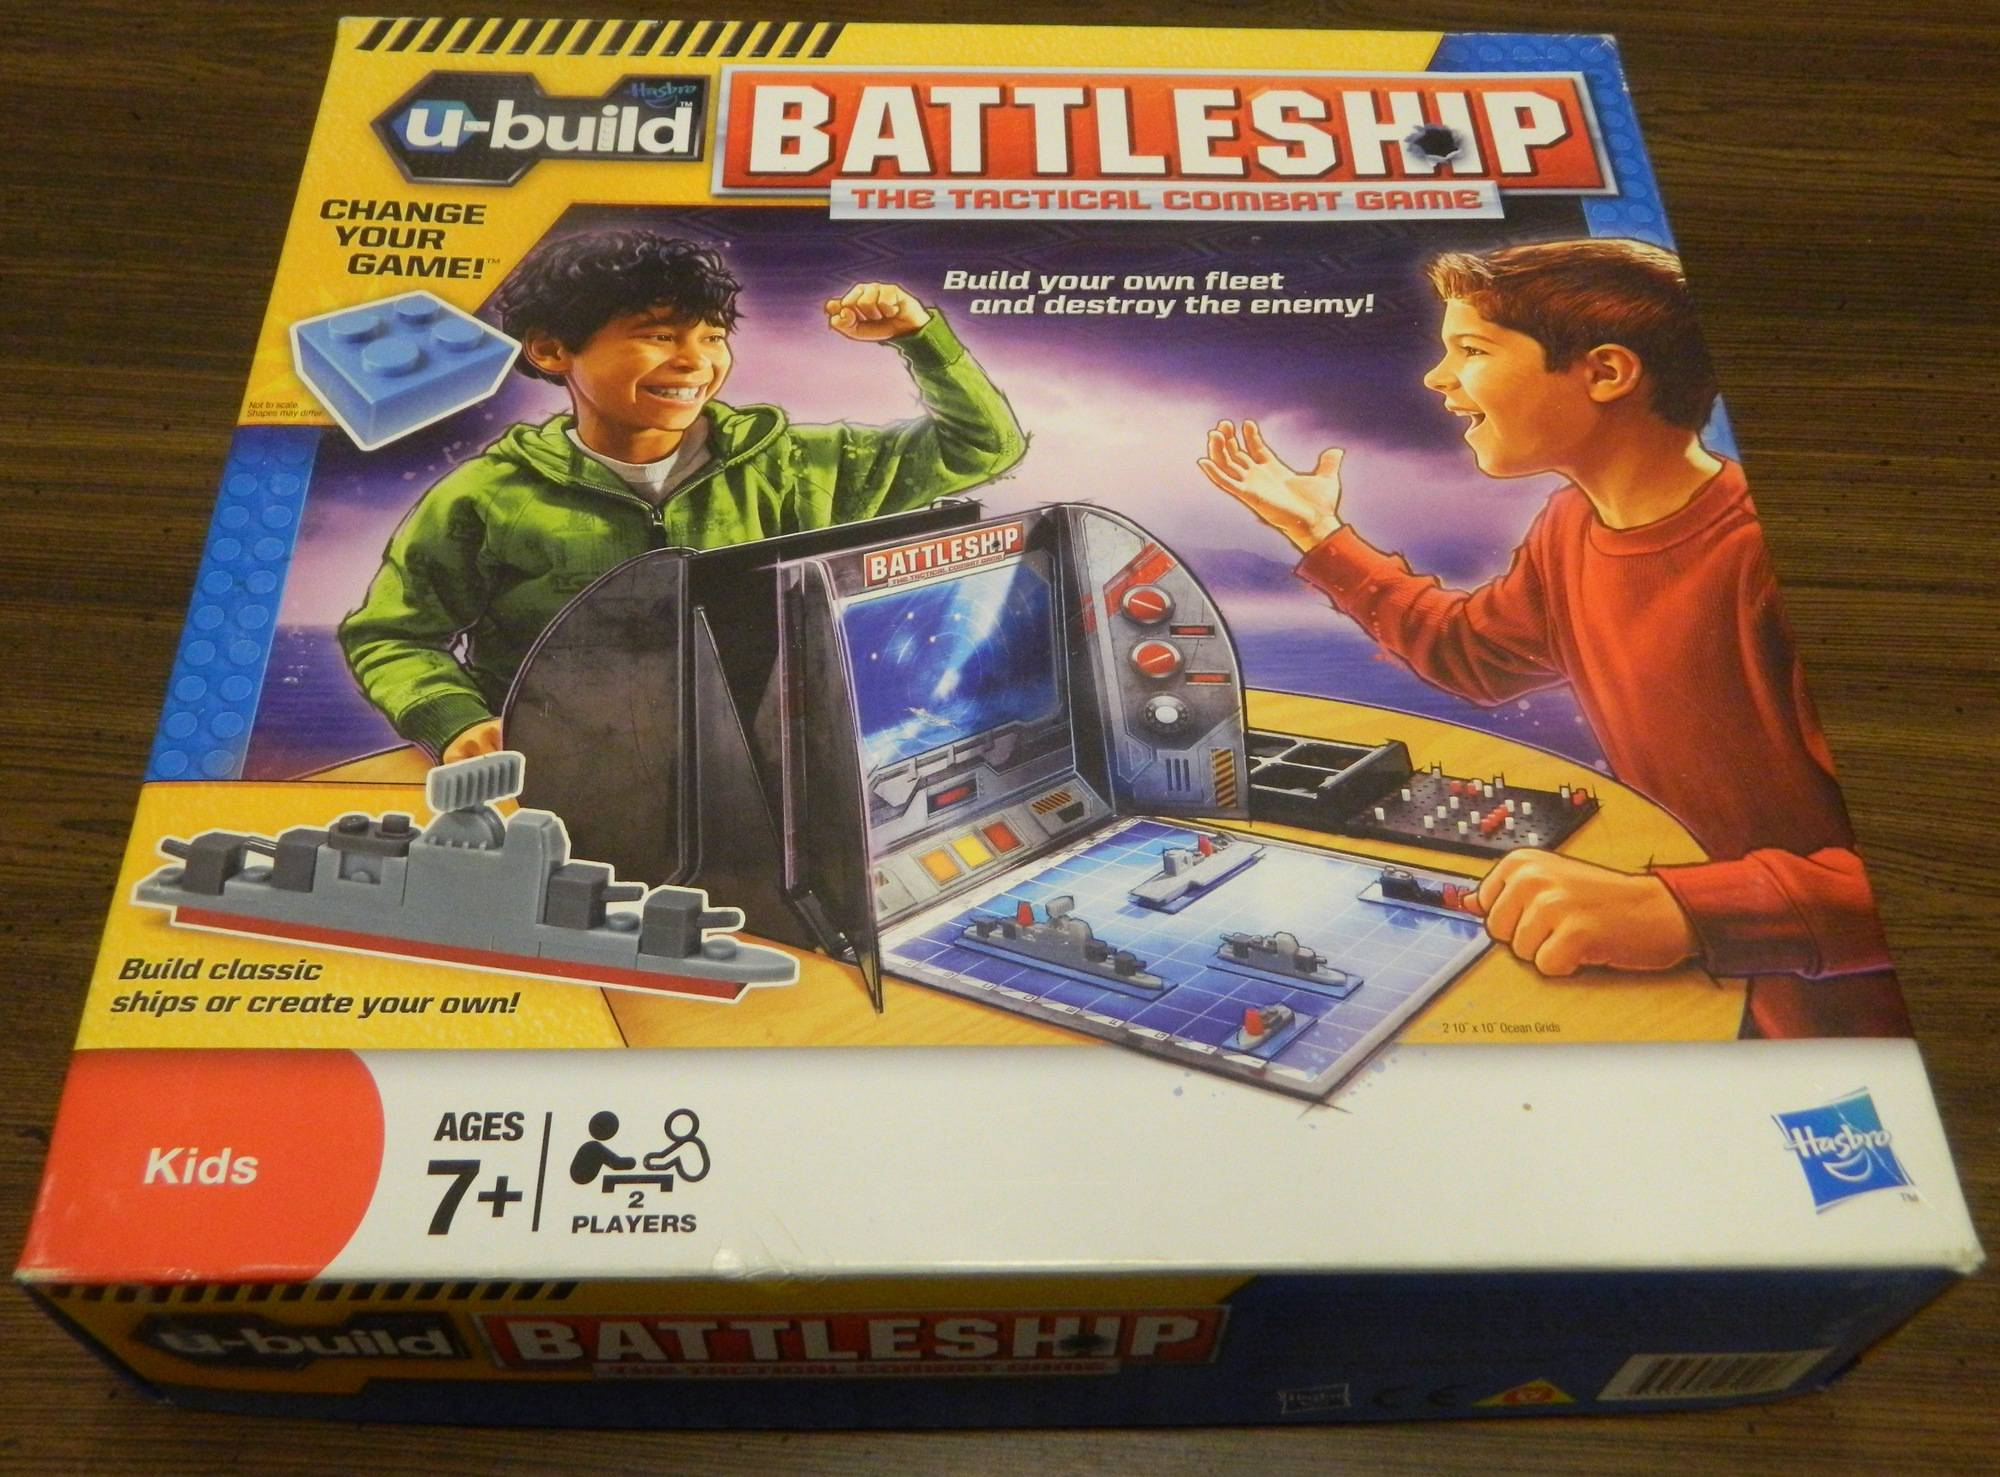 Box for U-Build Battleship